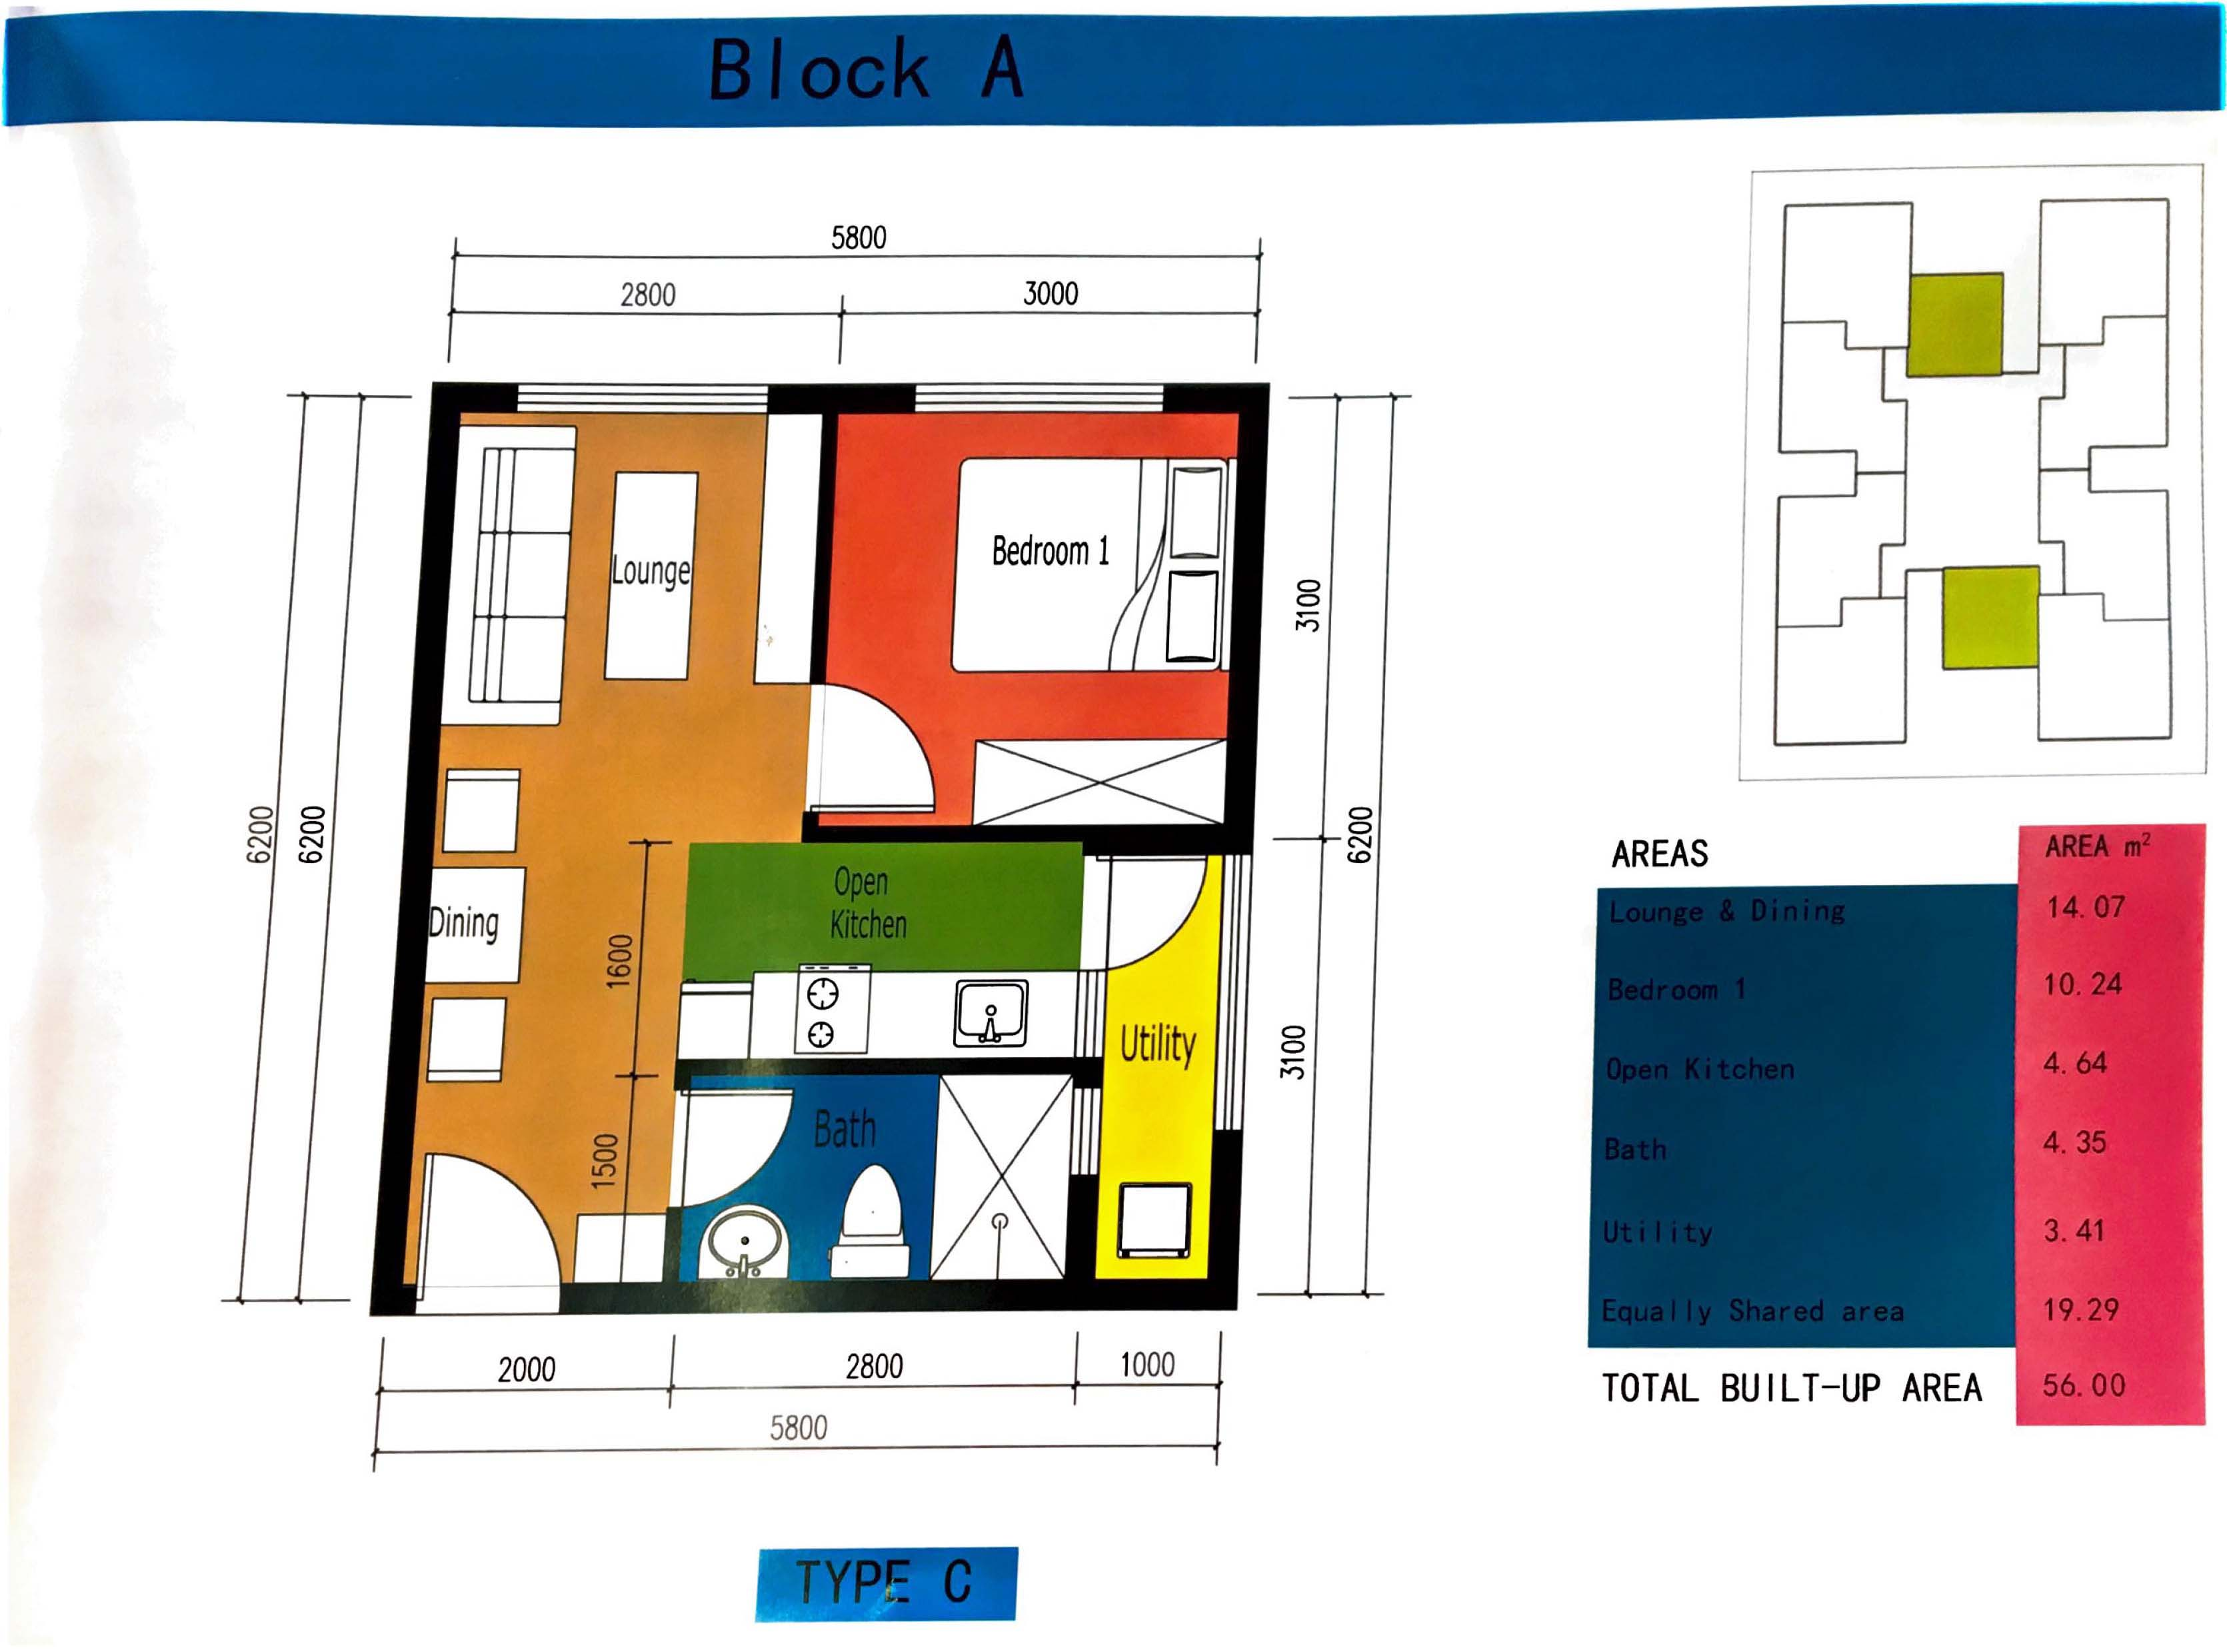 TYPE C 1 BEDROOM FLOOR PLAN